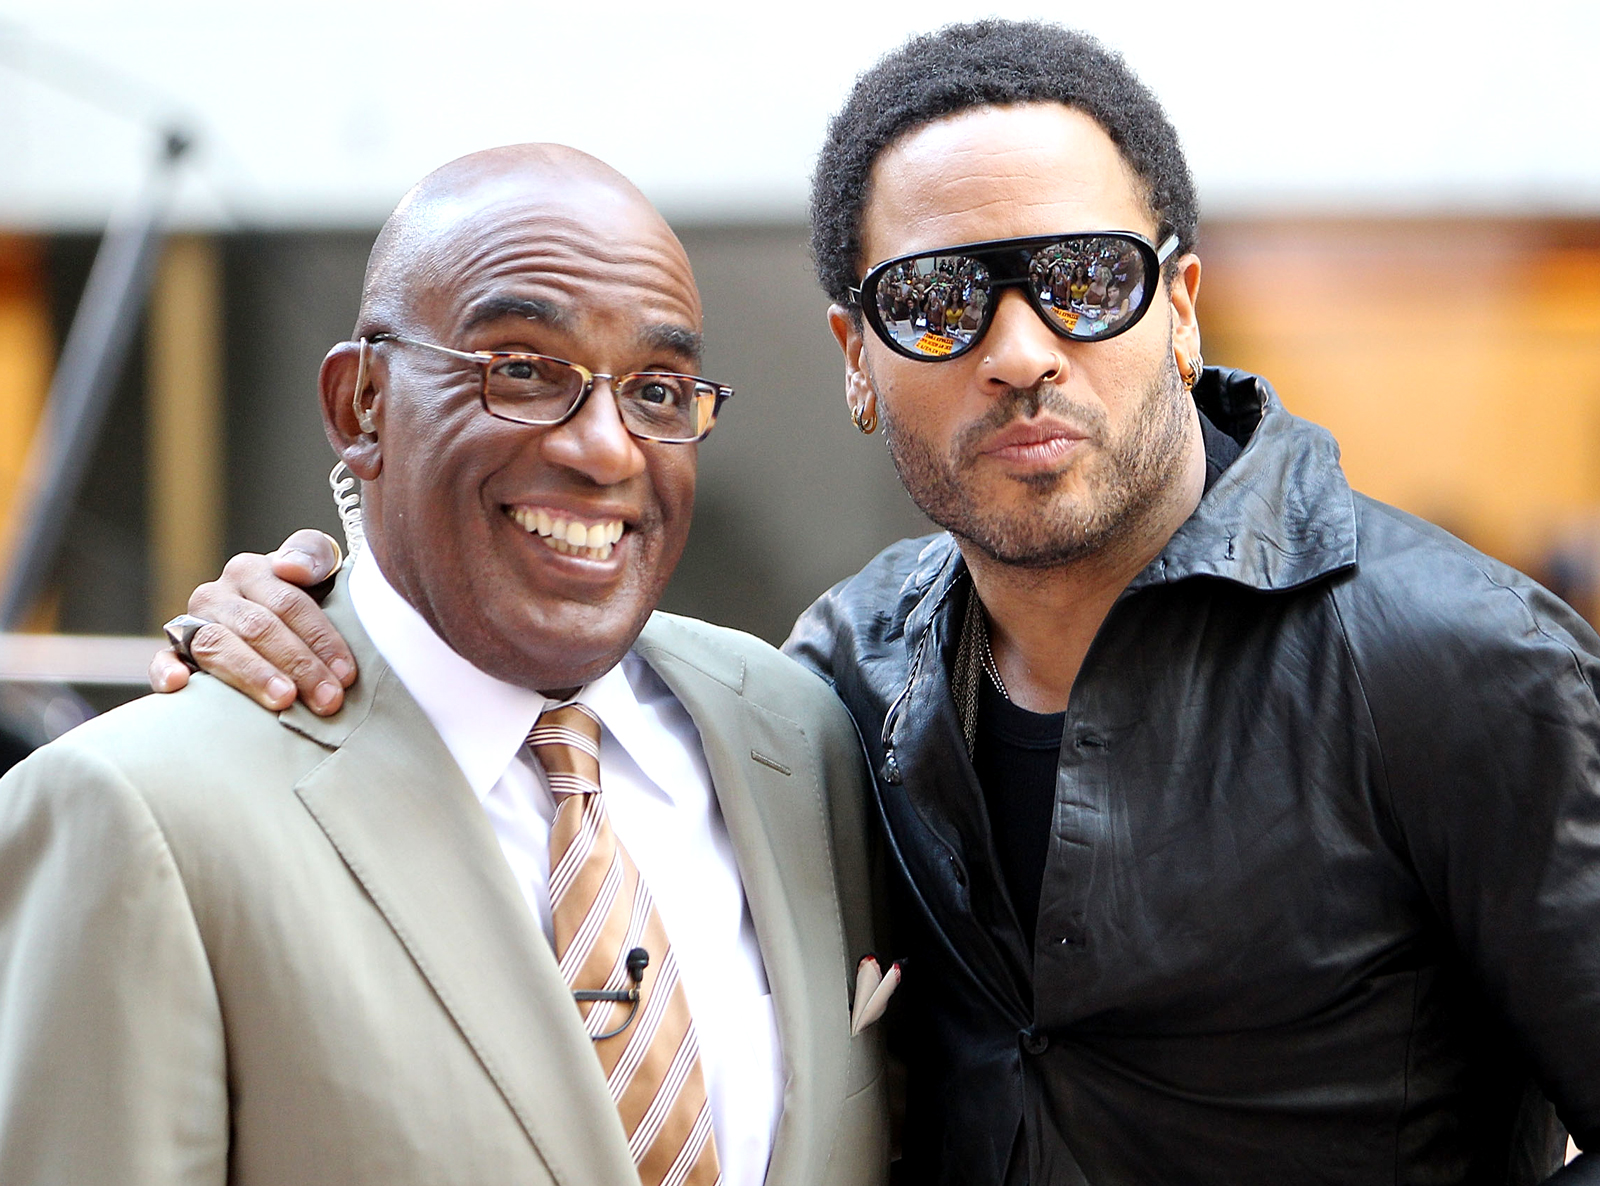 Al Roker and Lenny Kravitz